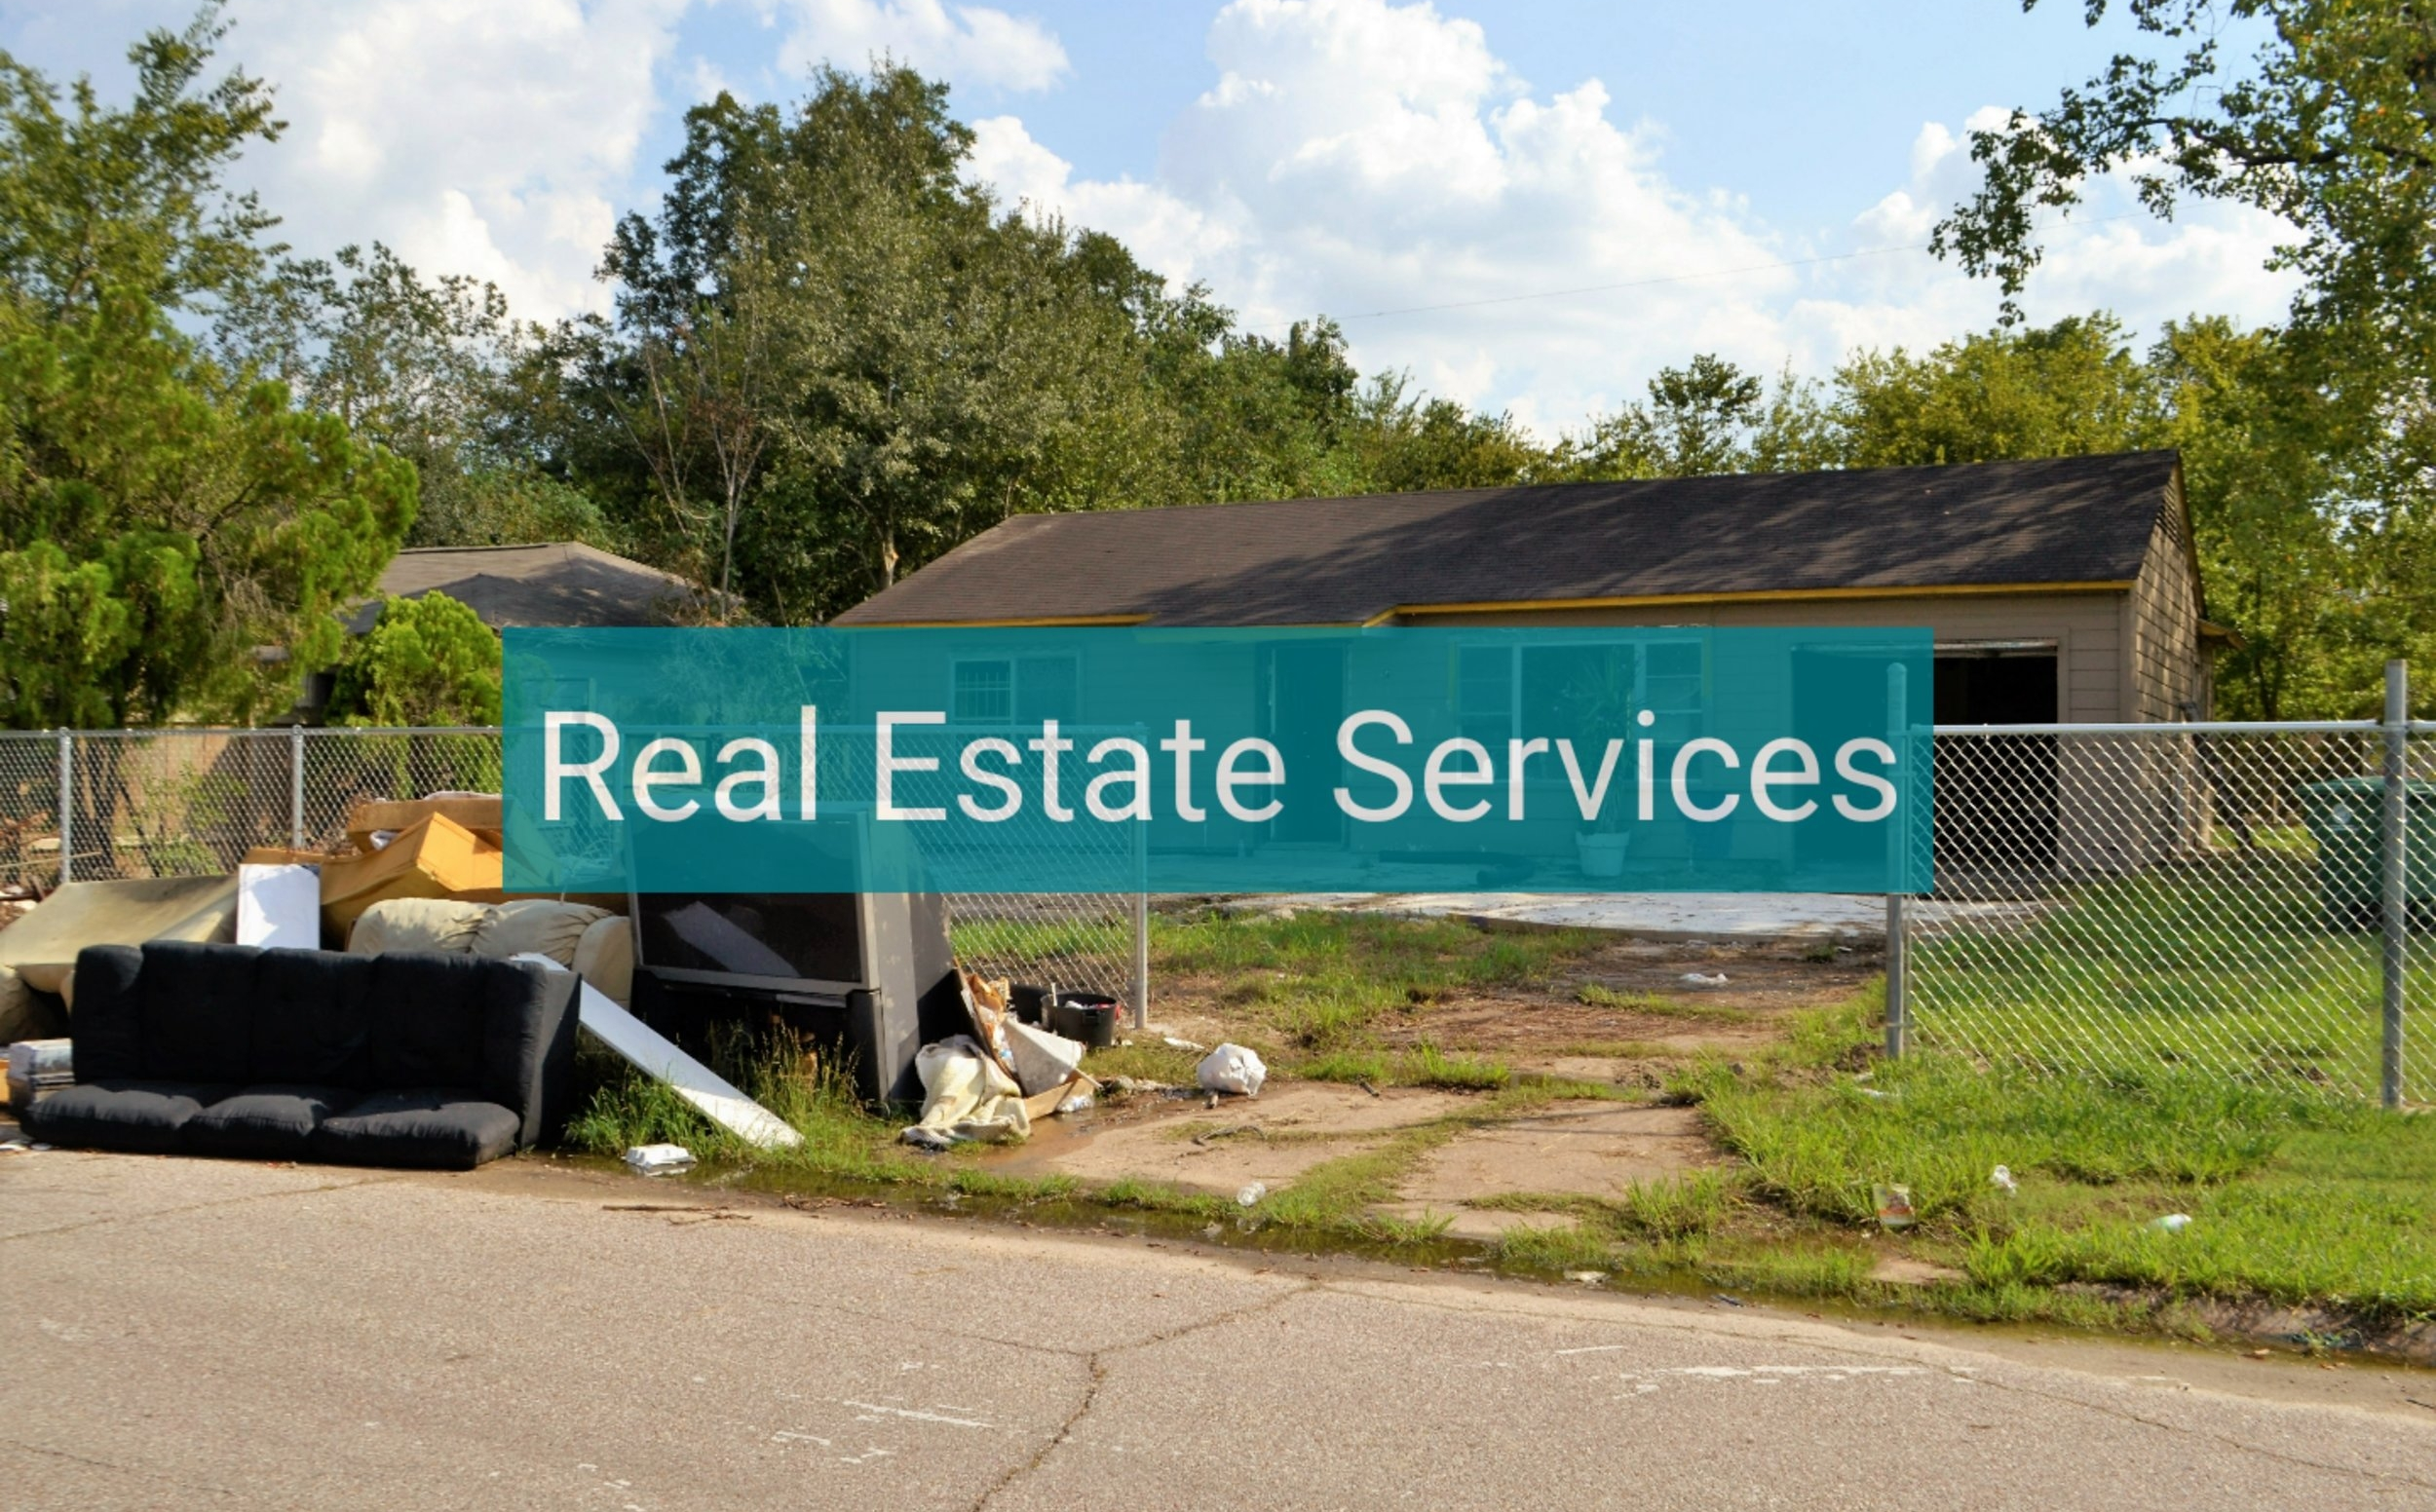 Real estate Junk removal Santa Fe